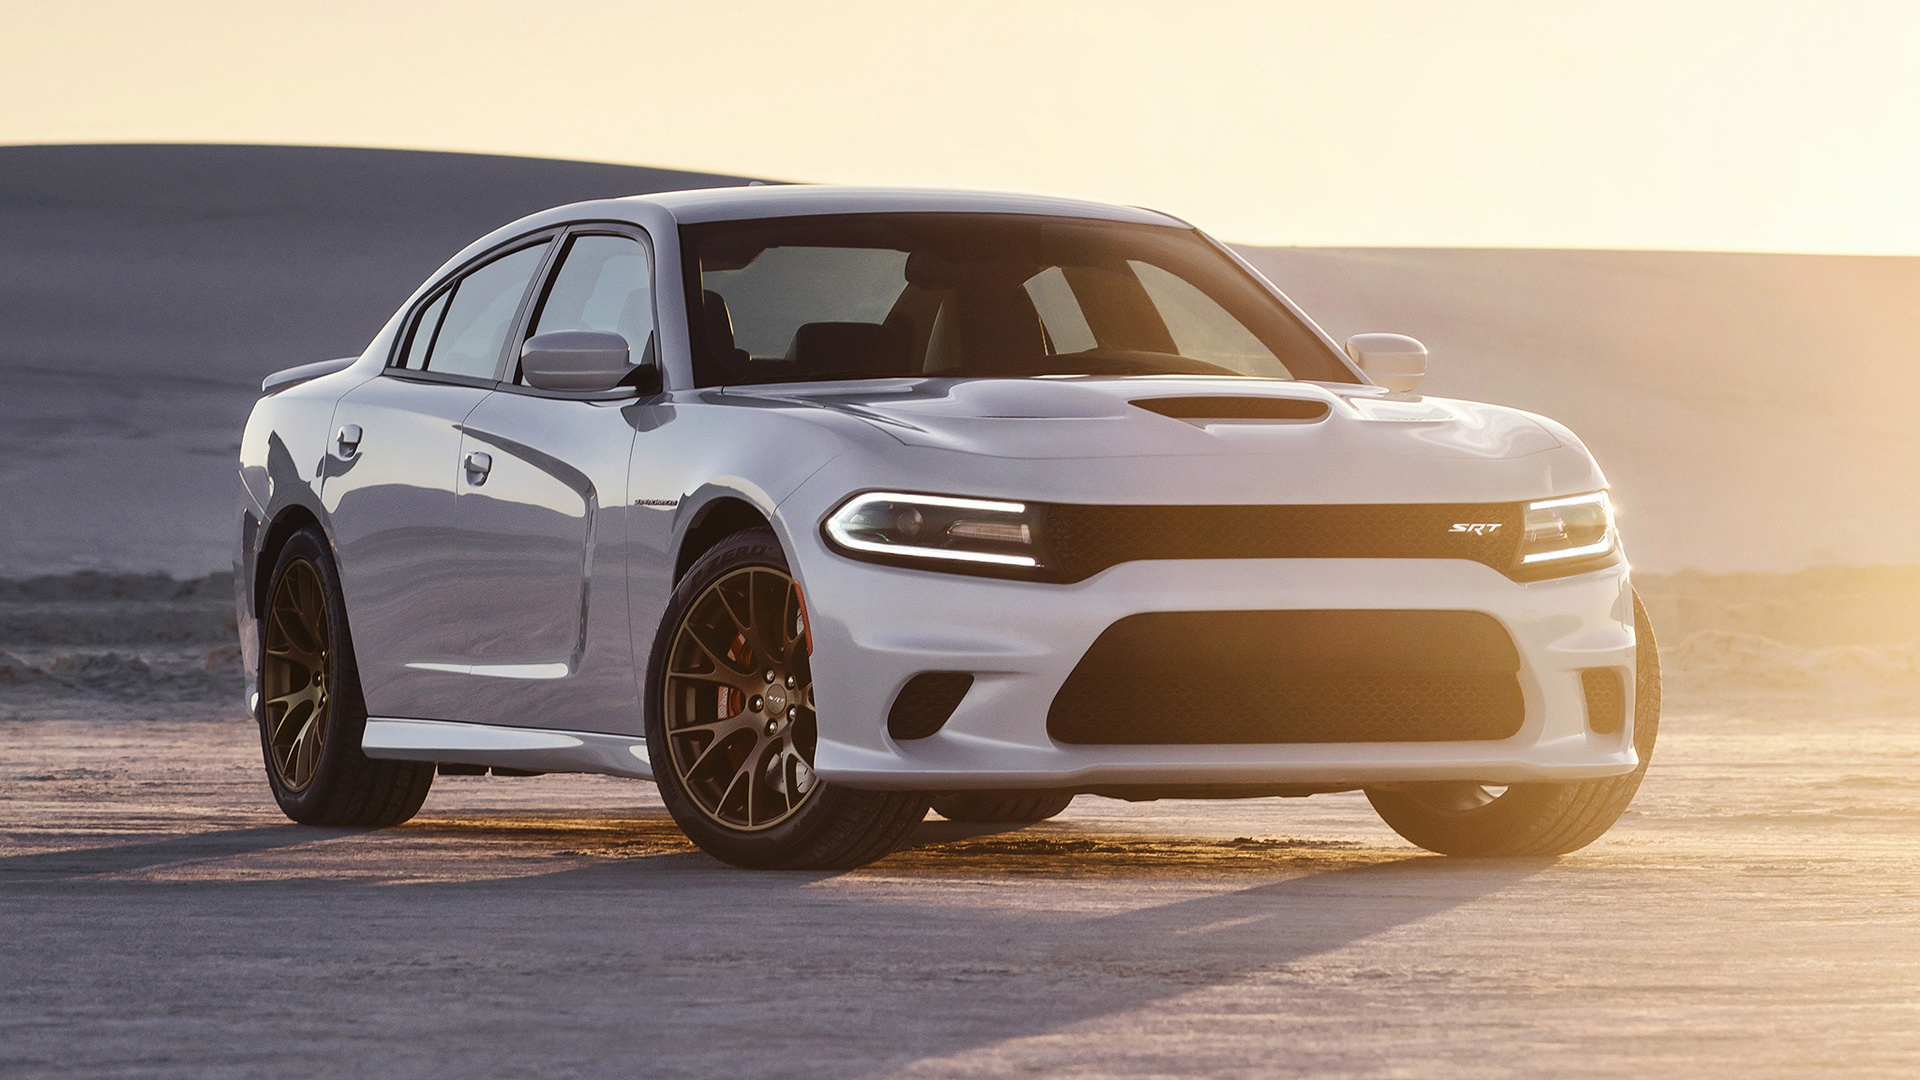 Dodge Charger Srt Hellcat 2015 Wallpapers And Hd Images